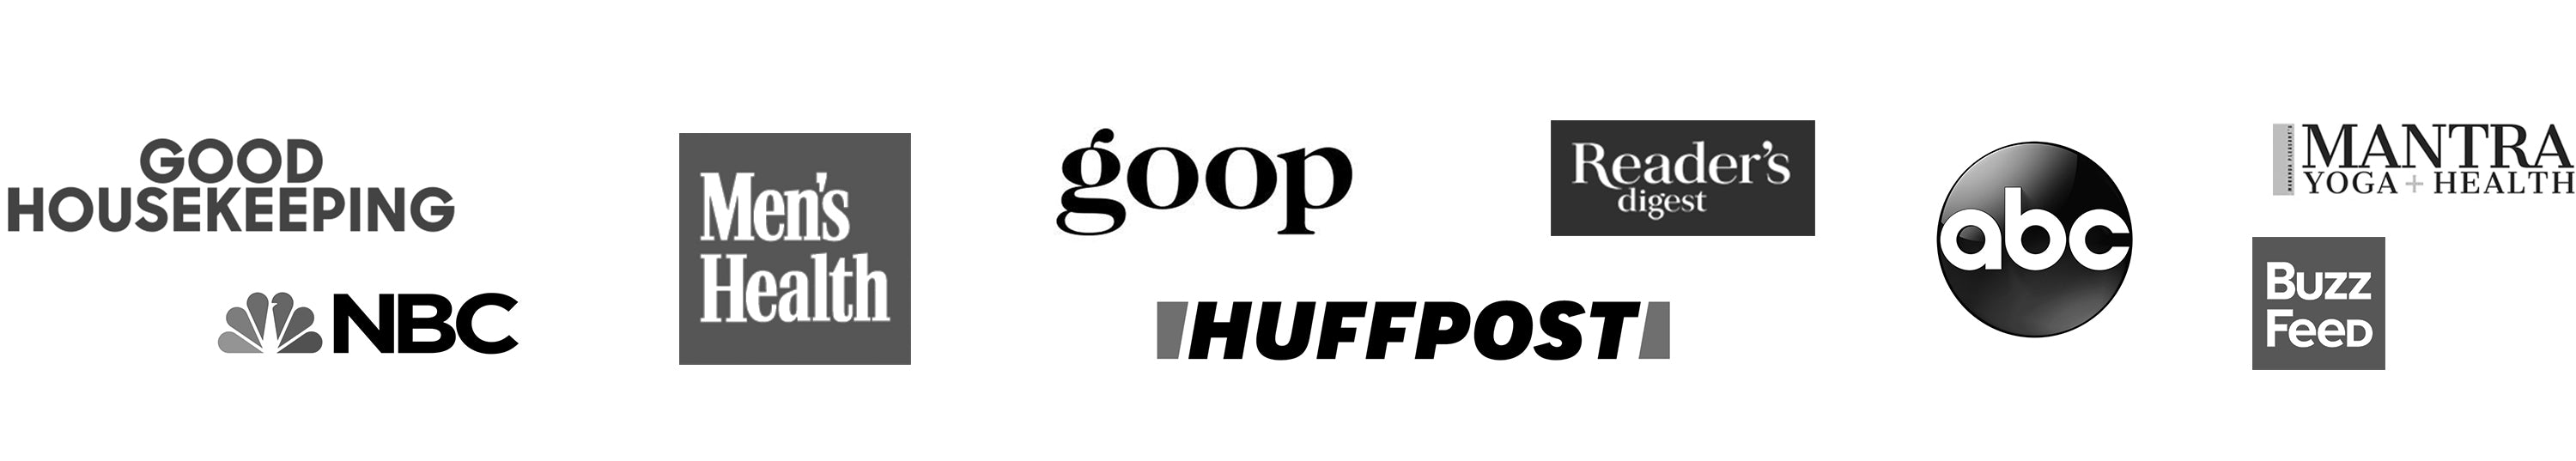 picture of good housekeeping nbc mens health goop huffpost readers digest abc mantra buzz feed logos